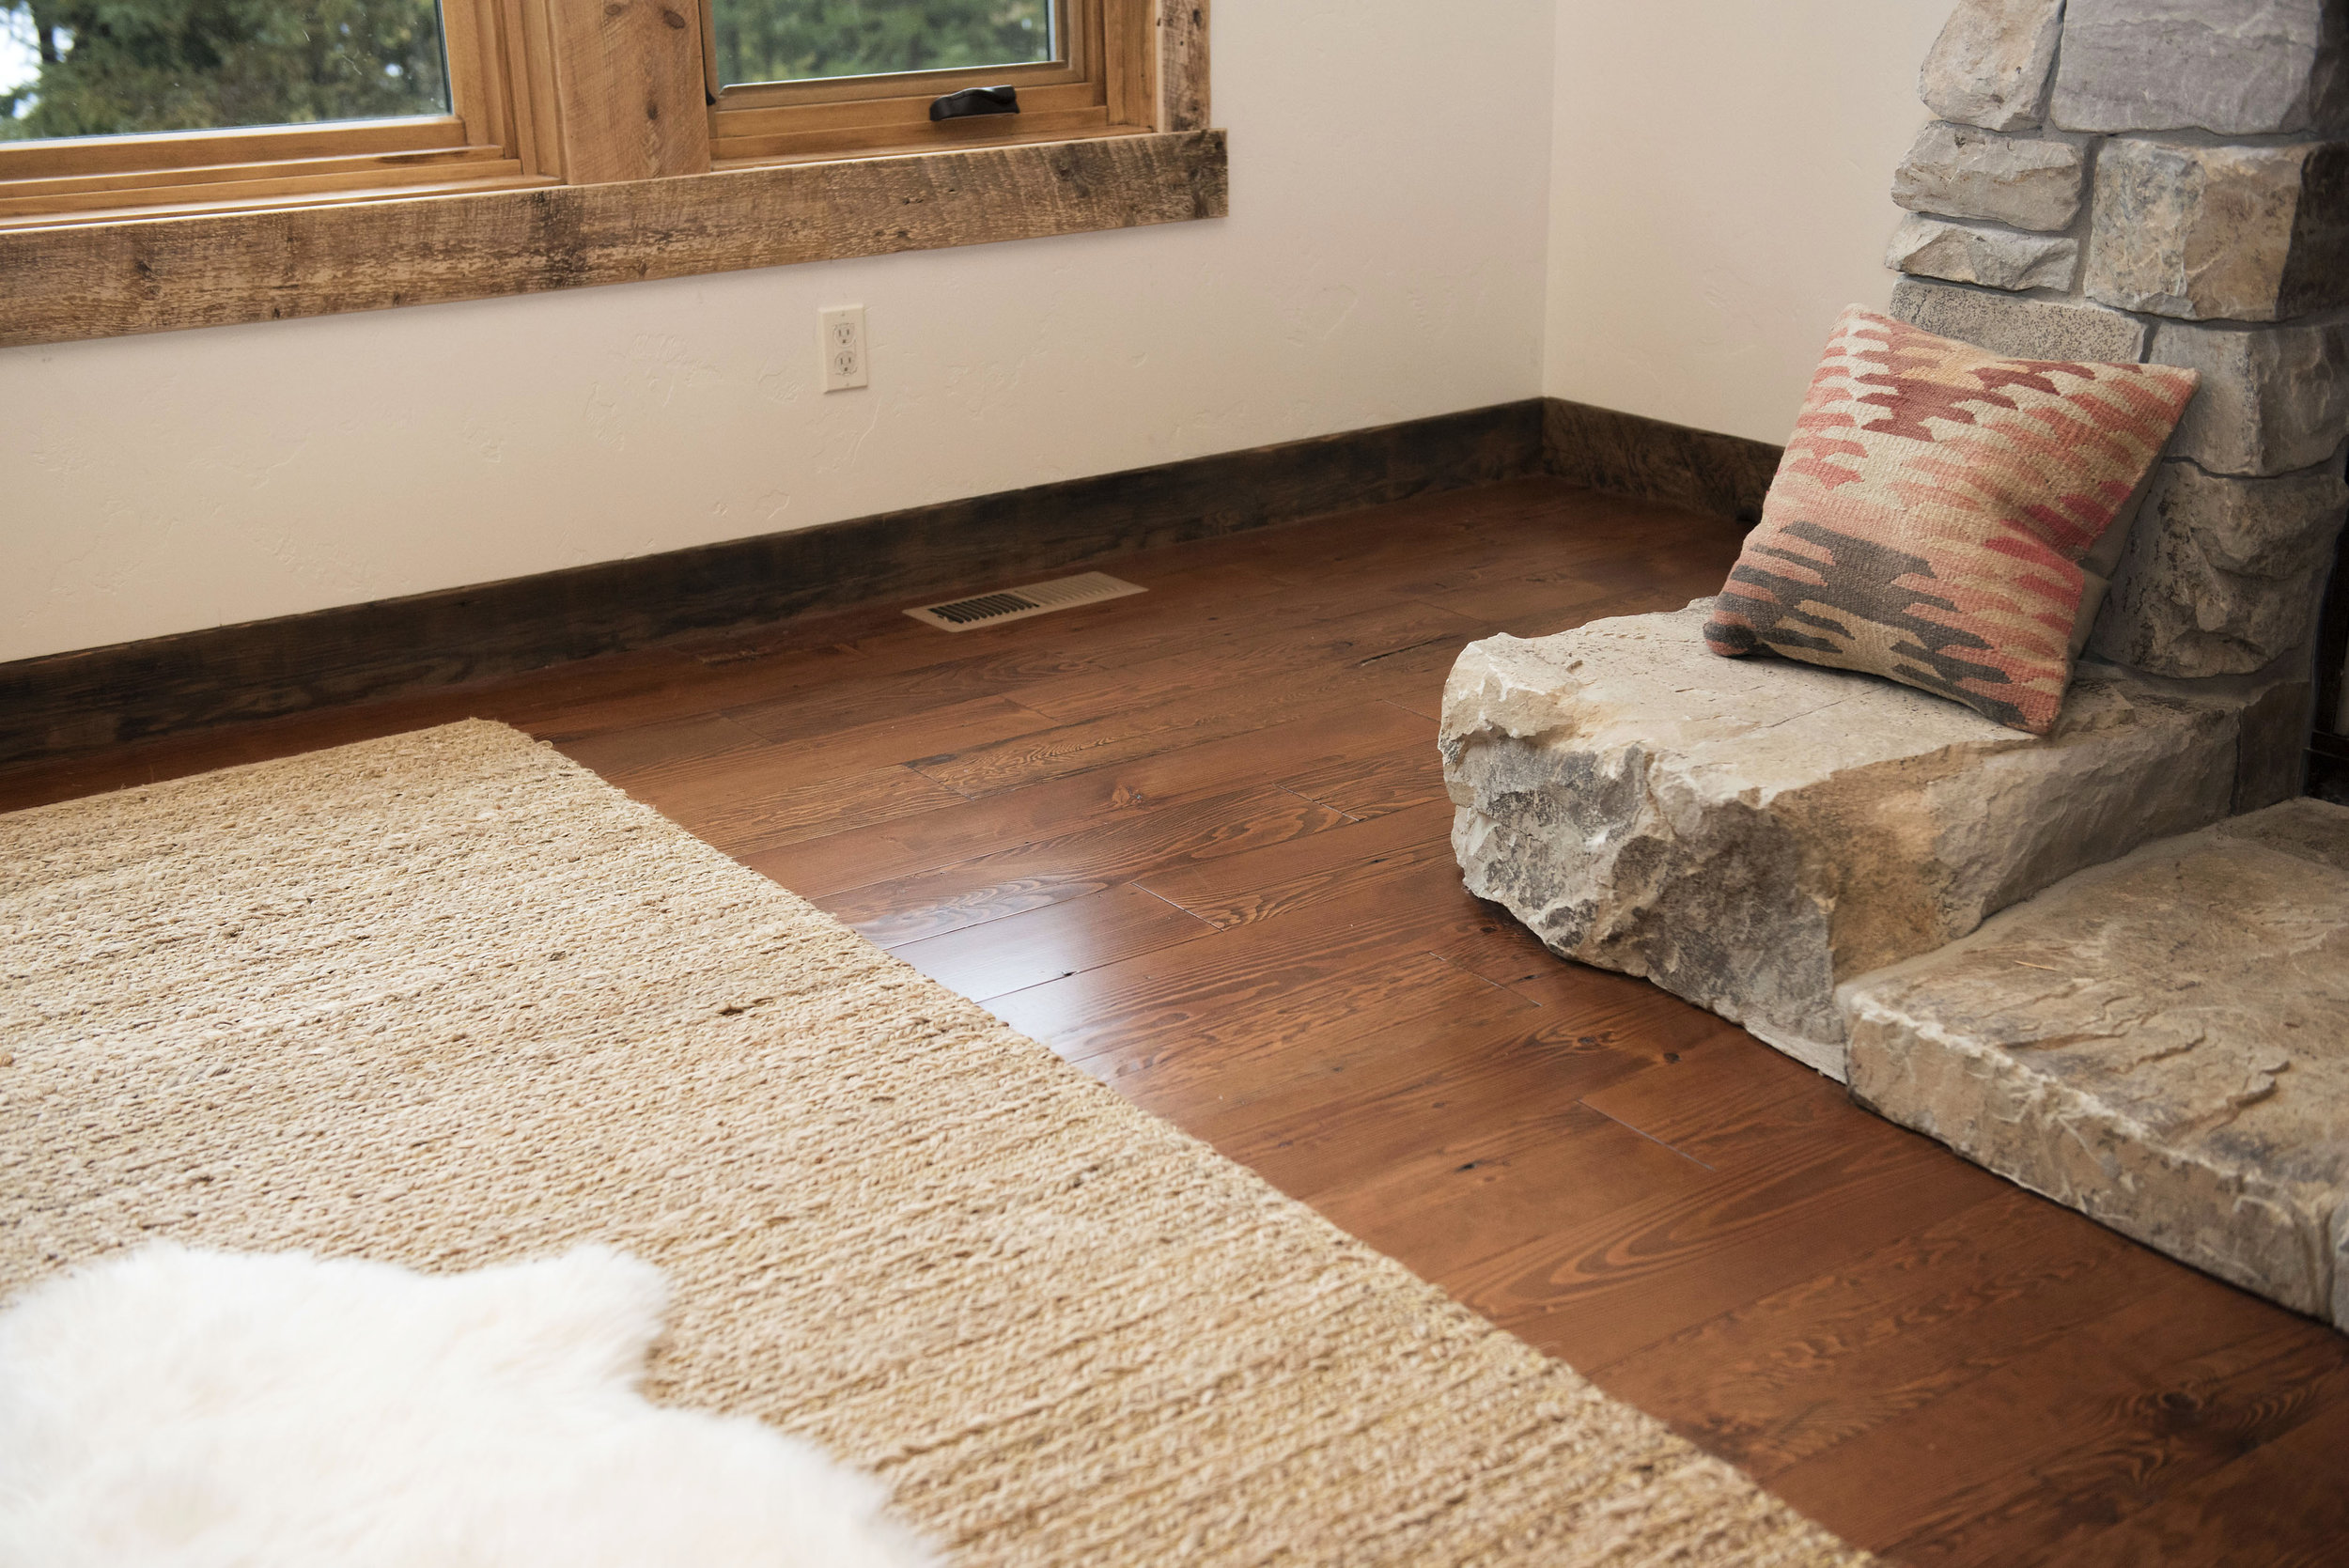 A detail of the reclaimed flooring which we sold unfinished. The homebuilder stained & sealed the material on site.